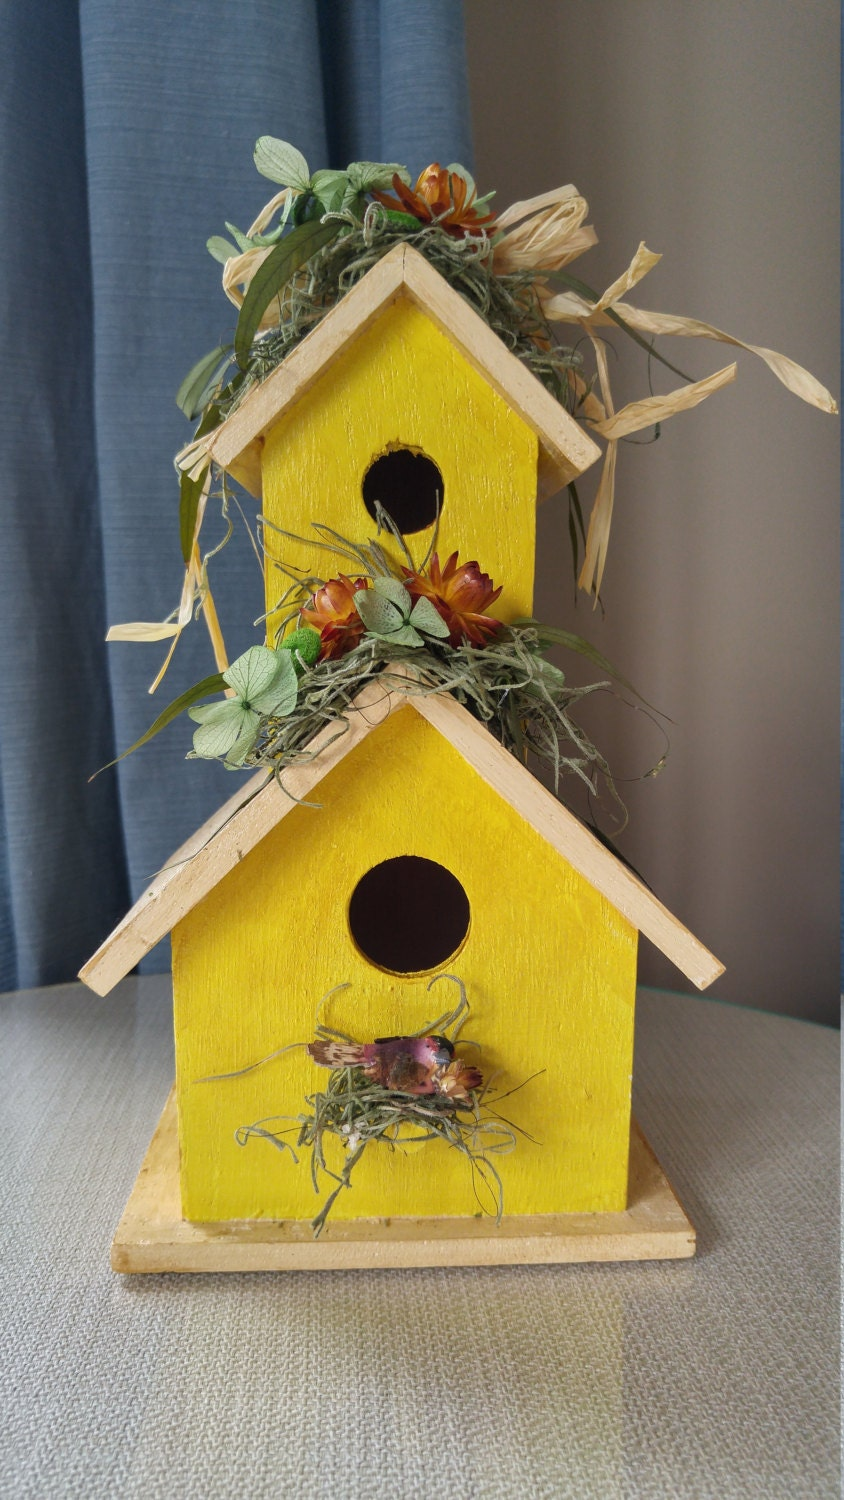 Spring Yellow Dried Flower Birdhouse Rustic Home Decor Garden Home Decorators Catalog Best Ideas of Home Decor and Design [homedecoratorscatalog.us]